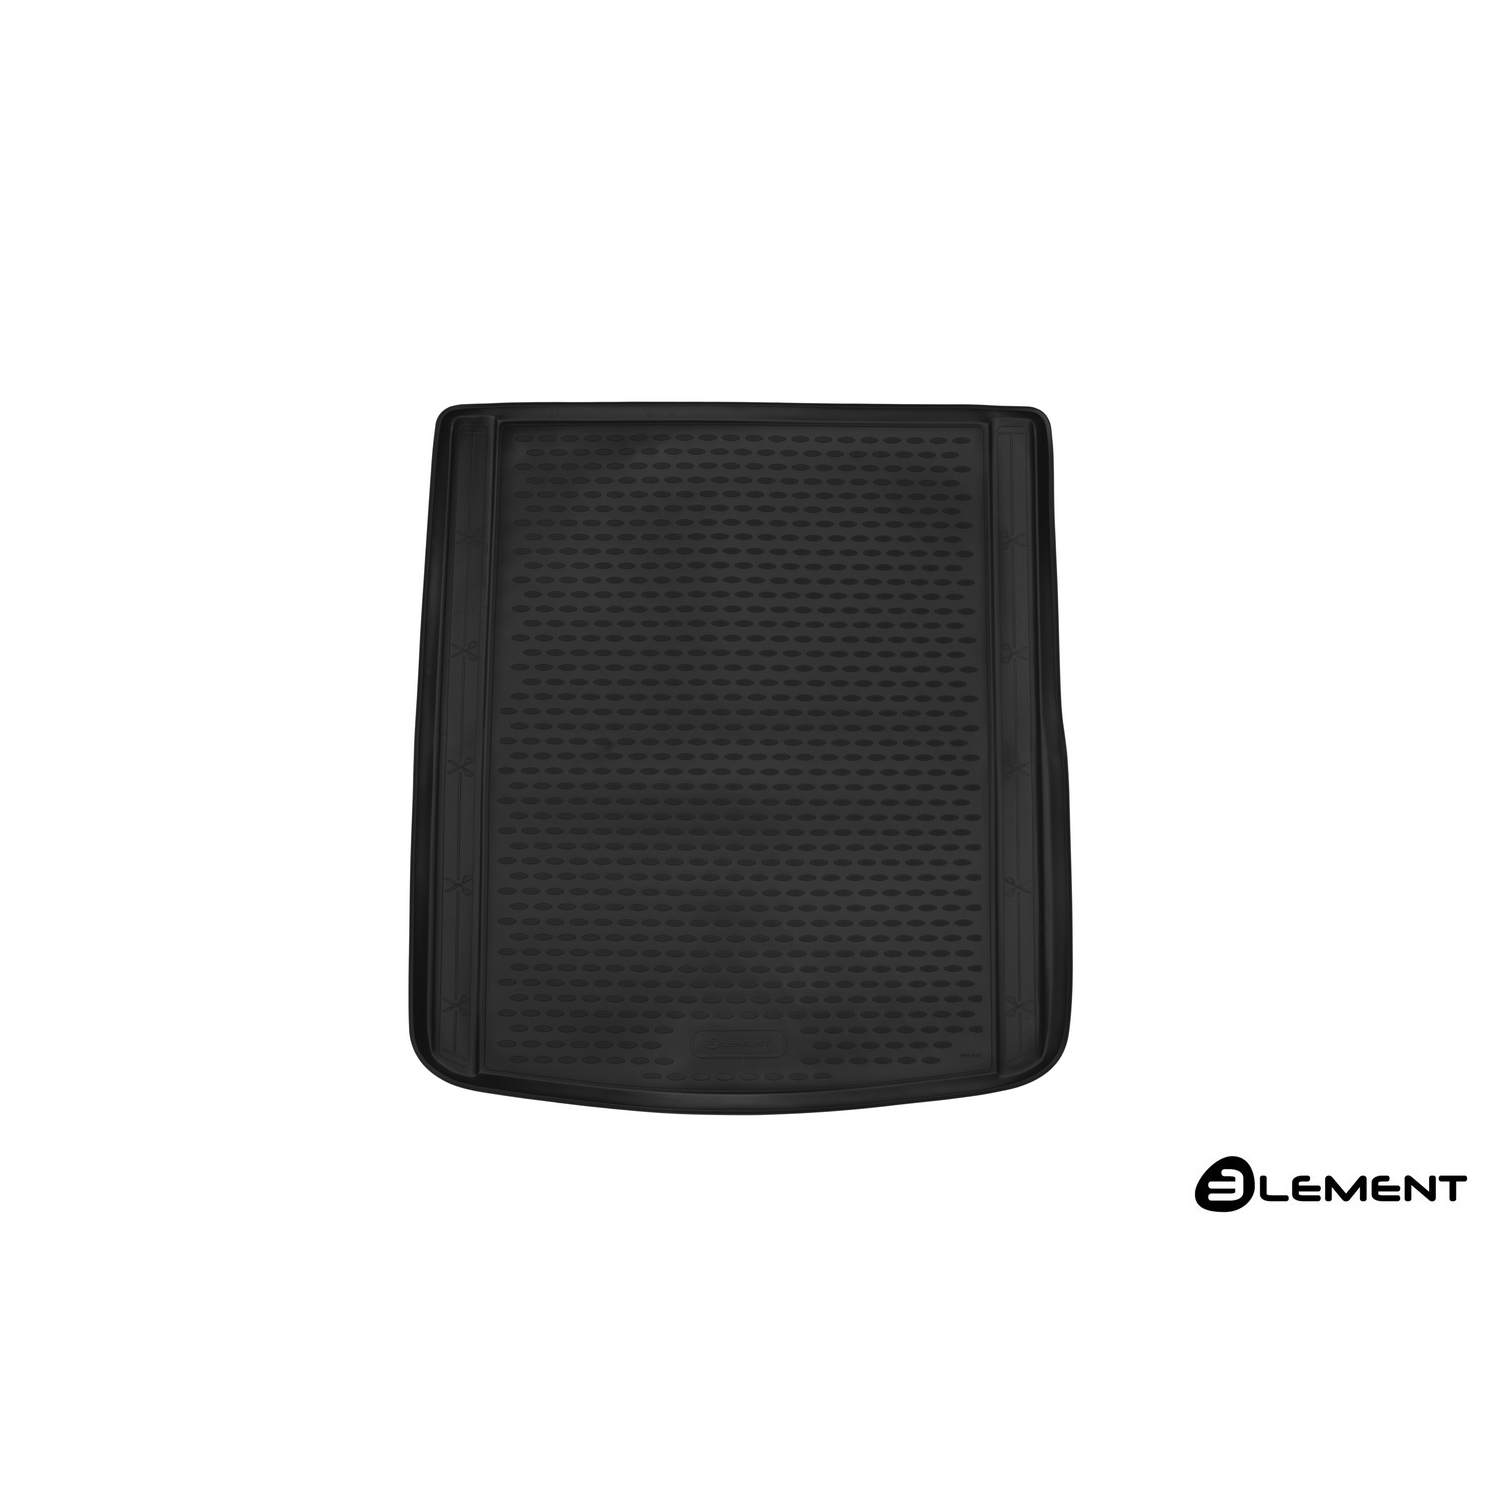 Trunk Mat For AUDI A6 III (C7), 2012, Avant/Allroad, (Europe), 1 PCs ELEMENT0423B12